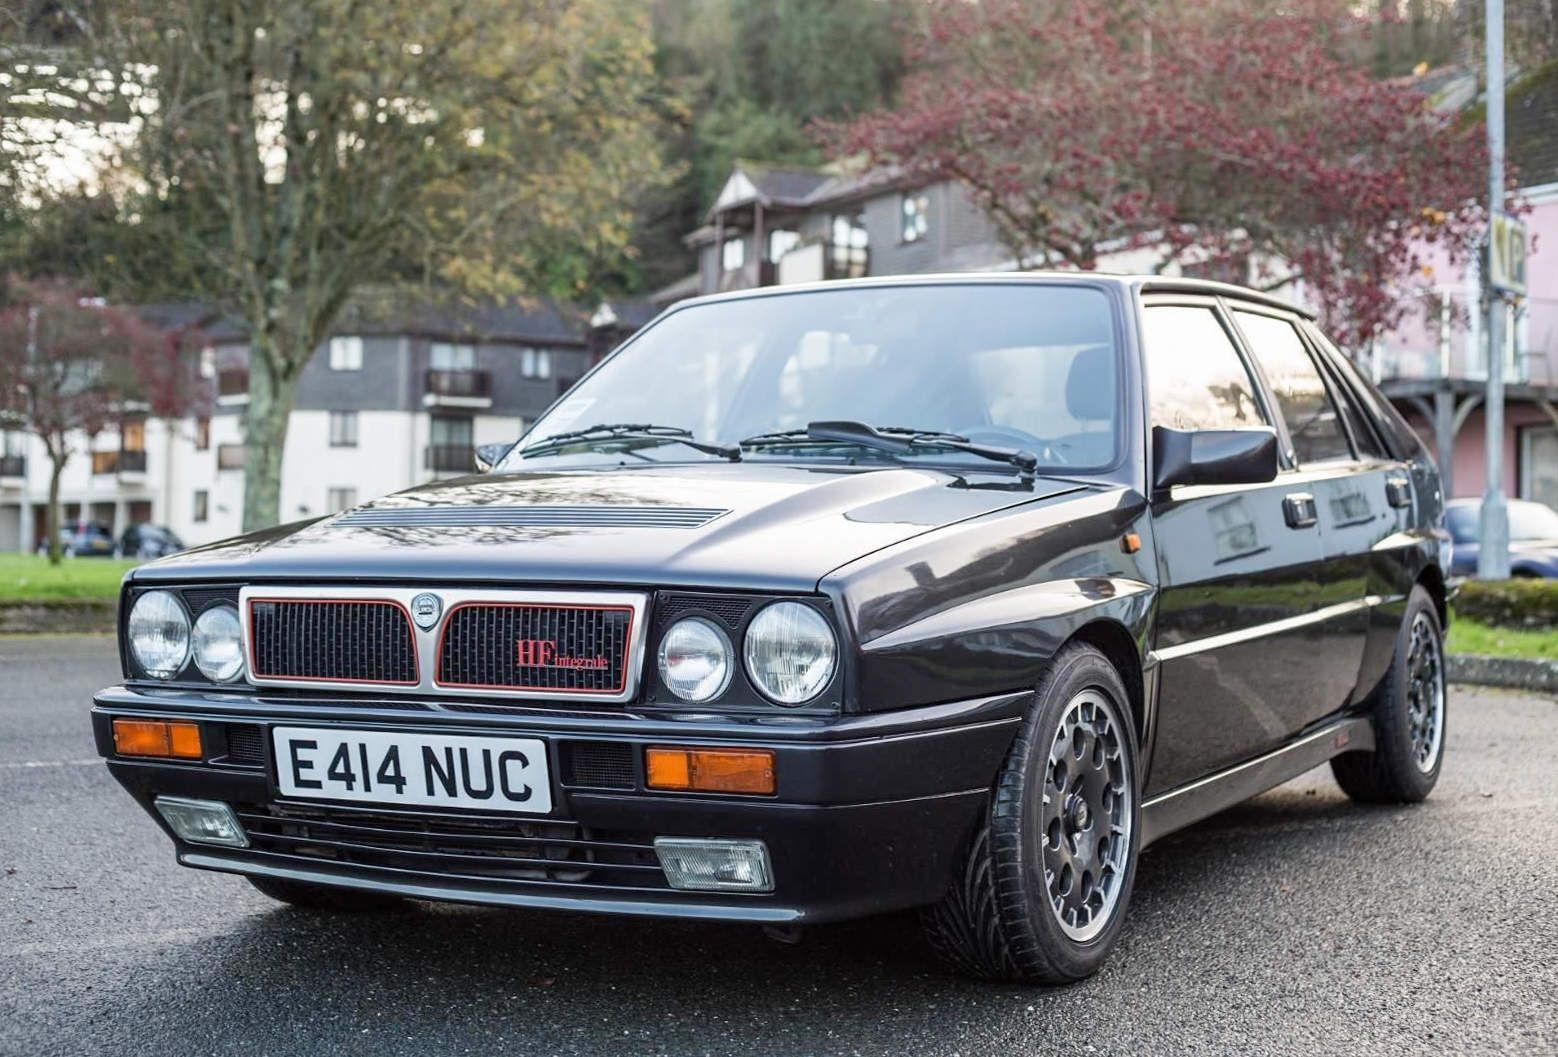 1988 Lancia Delta Integrale In the late 1980s, the Lancia rally team ...